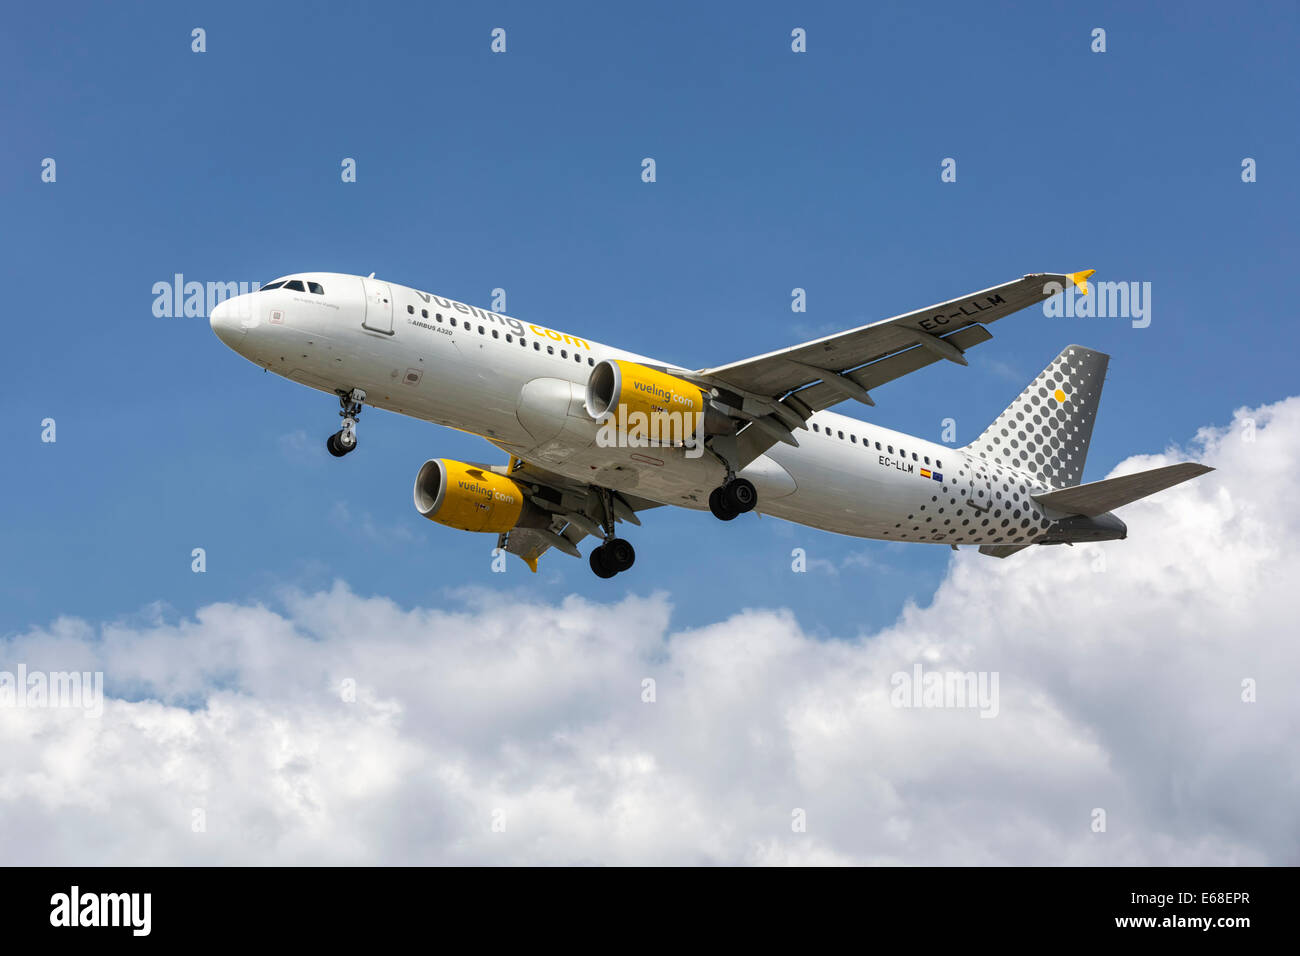 An Airbus A320 of the Spanish airline - Vueling - Stock Image